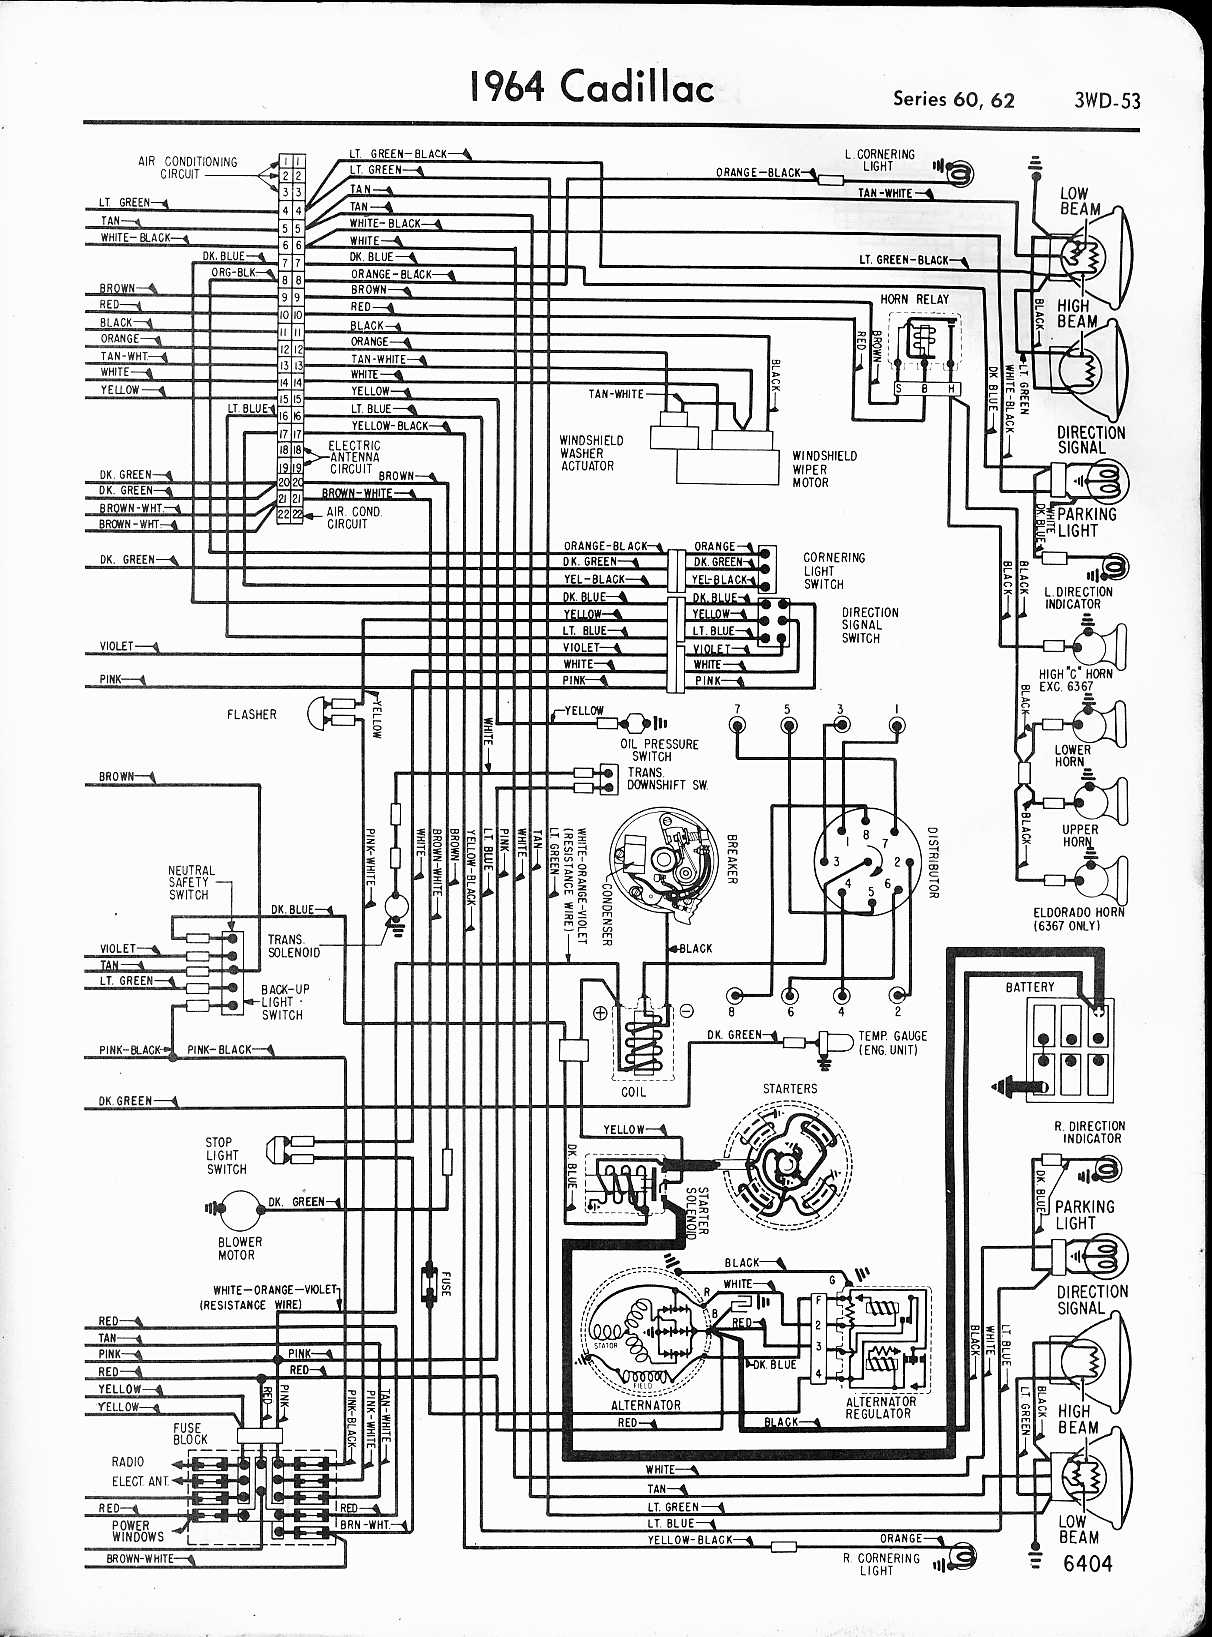 1964 cadillac coupe deville wiring diagram house wiring diagram rh maxturner co  93 cadillac deville radio wiring diagram